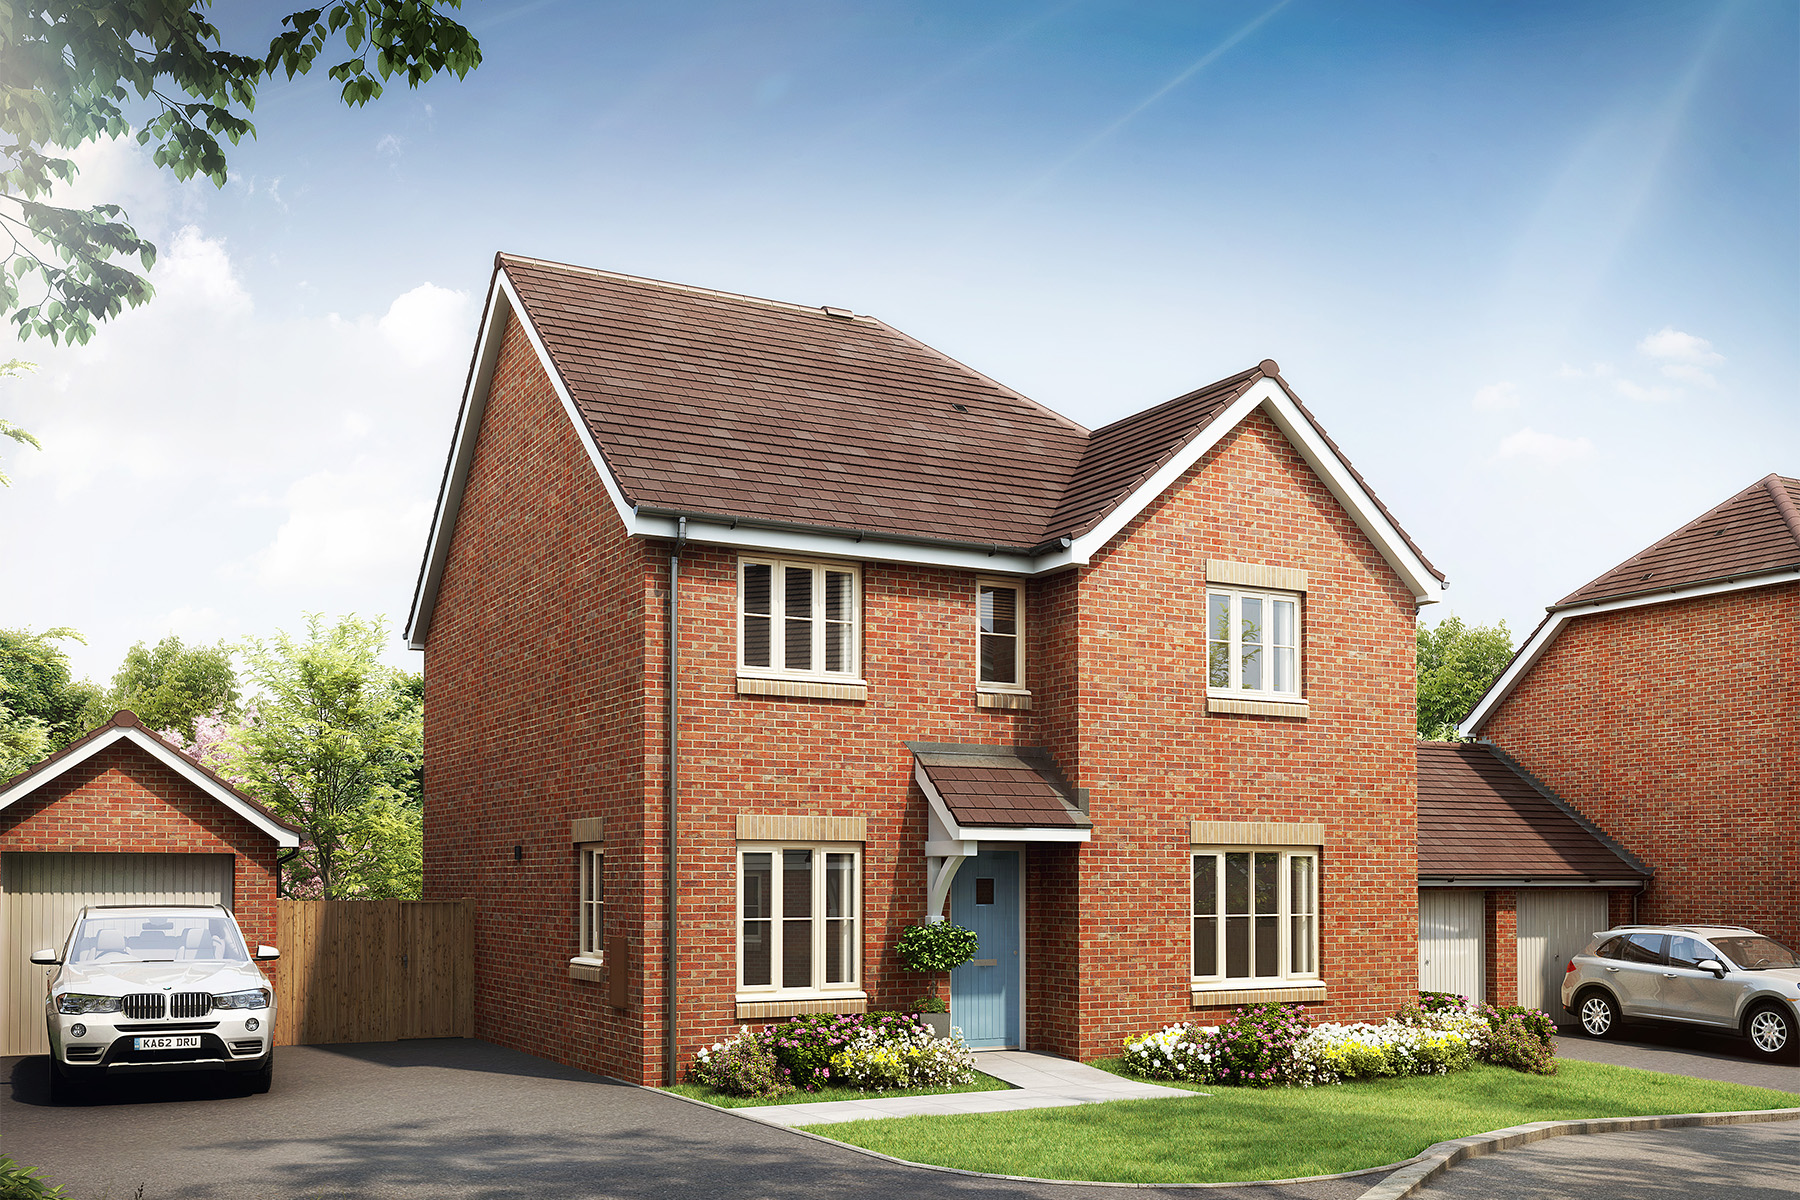 Appledore S - Plot 8